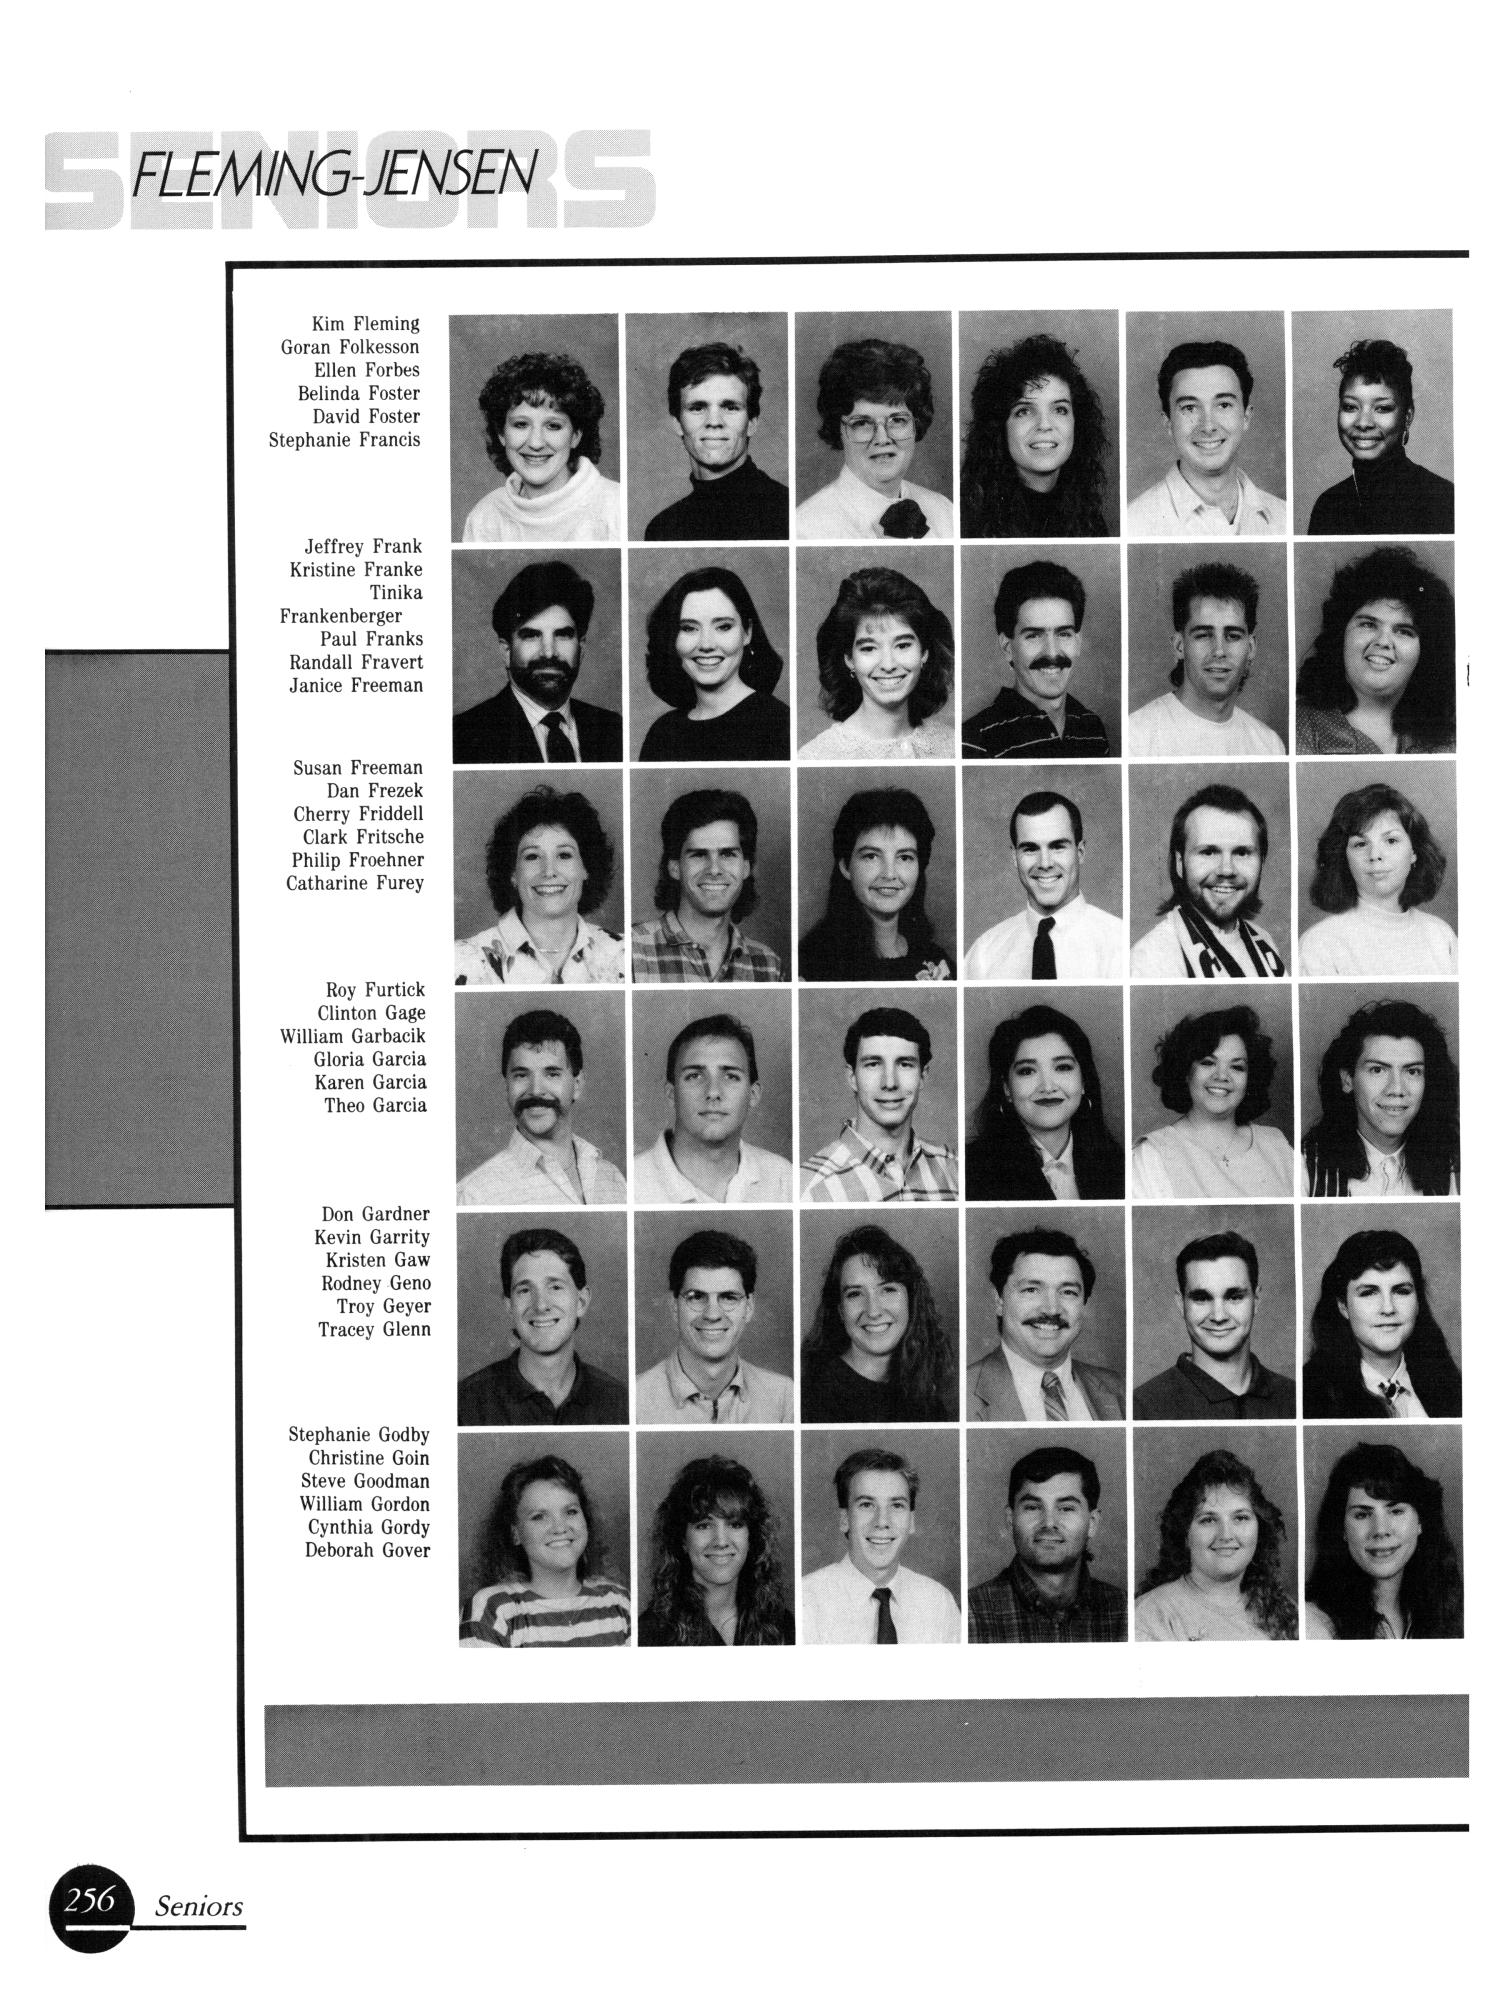 The aerie yearbook of university of north texas 1995 page 44 unt - The Aerie Yearbook Of University Of North Texas 1990 Page 257 Digital